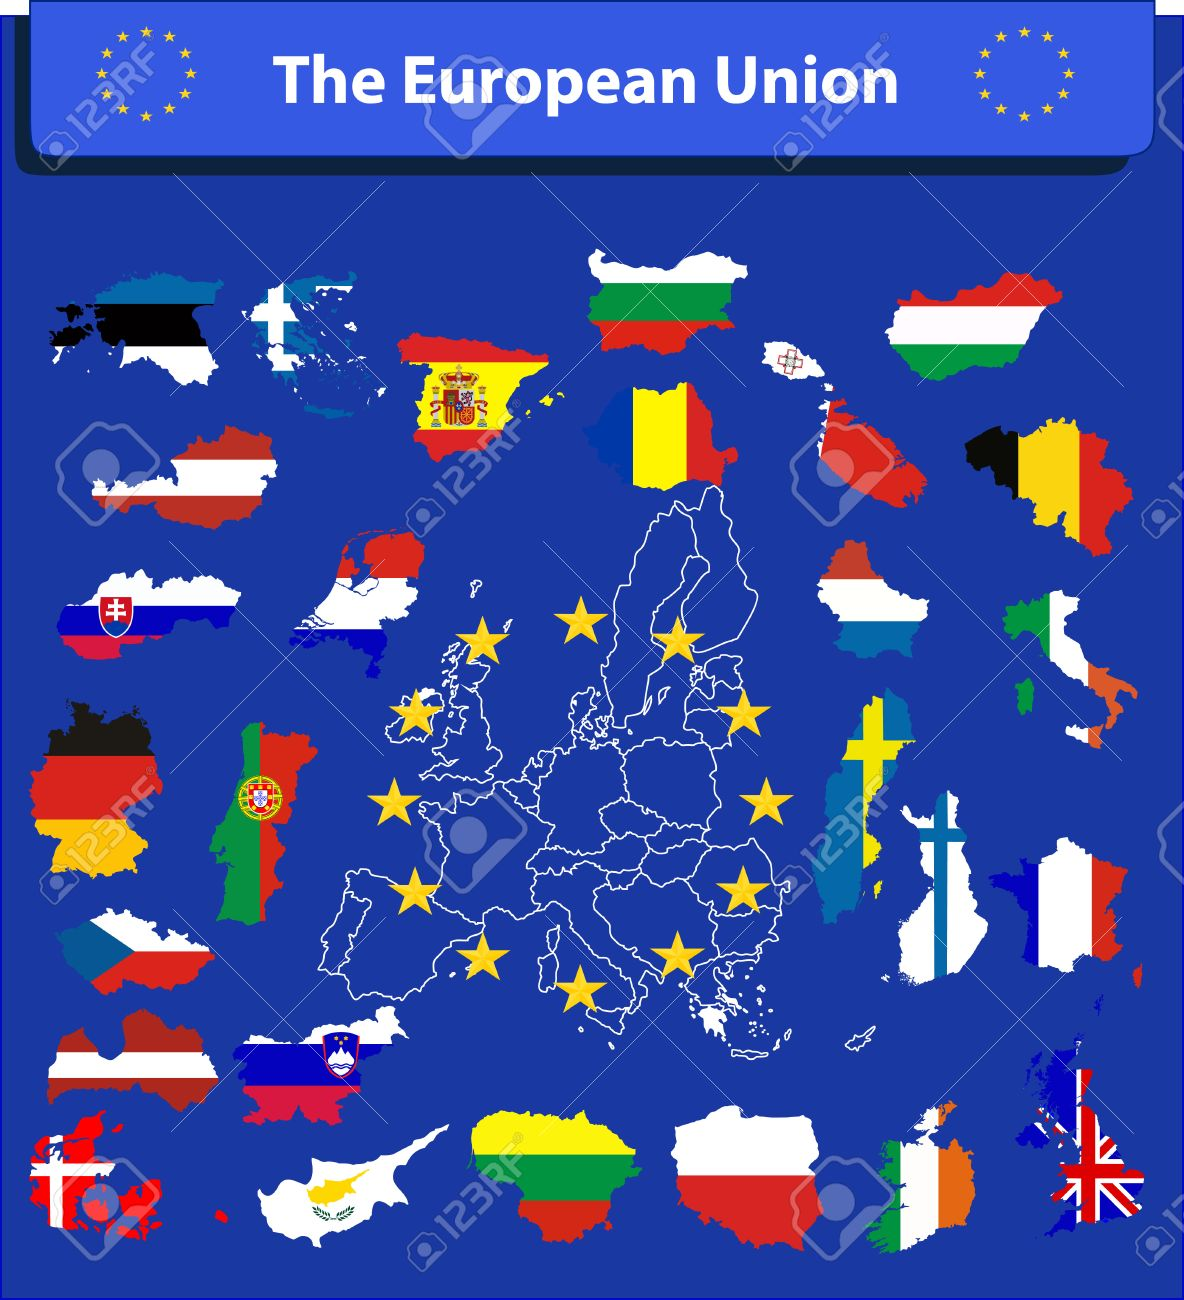 The European Union Map And All The Countries Flags Of The Member